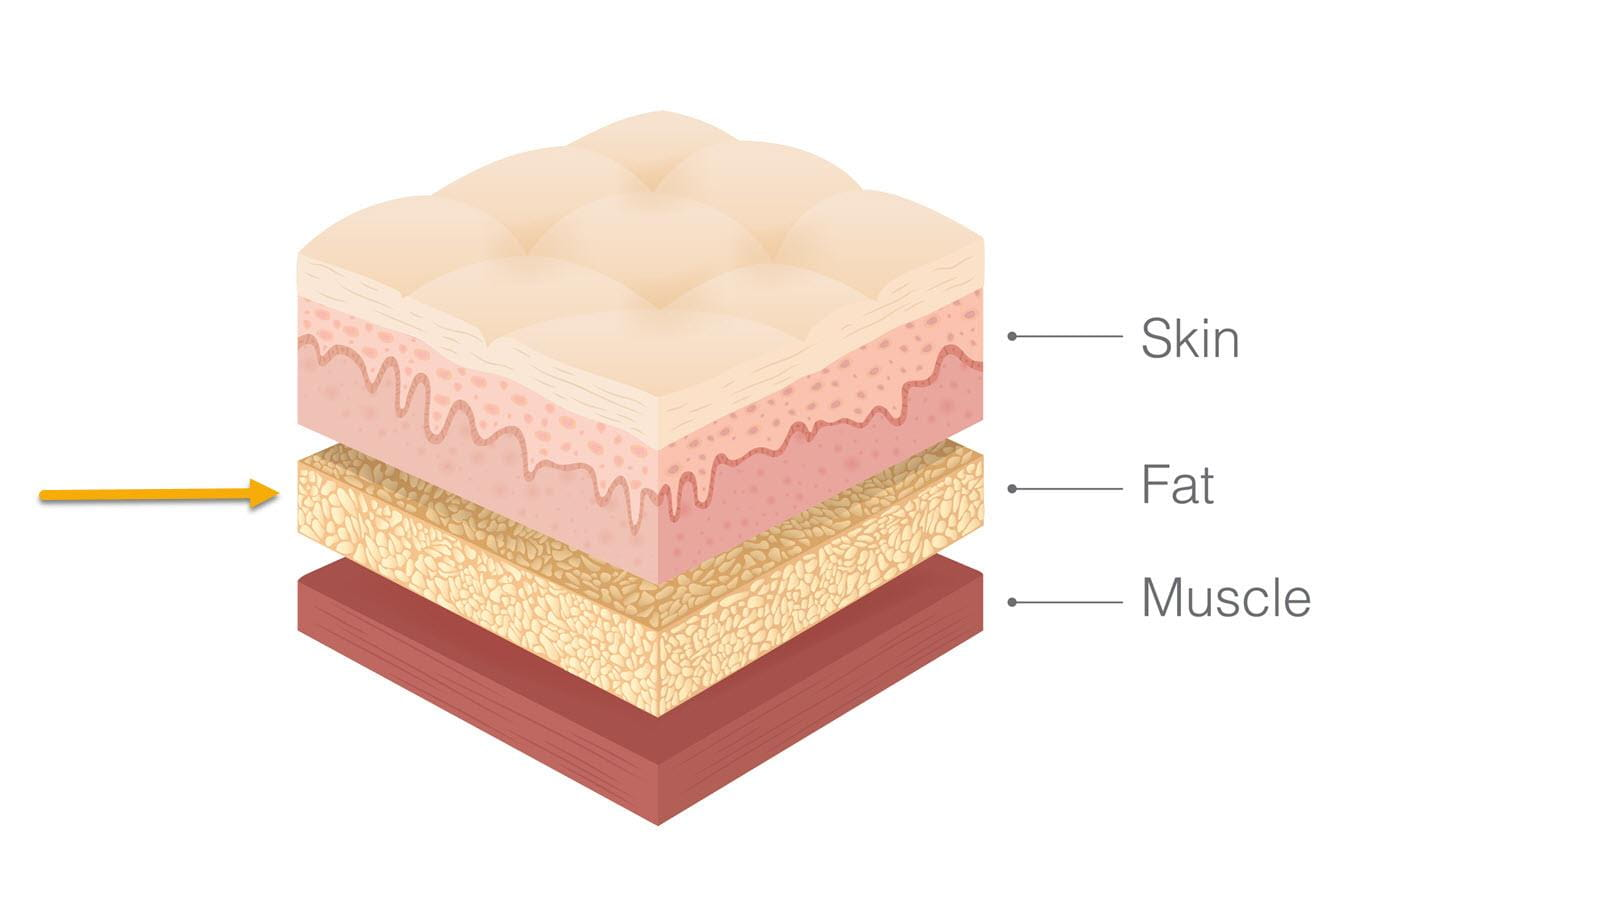 Cross section showing three layers: skin, fat and muscle